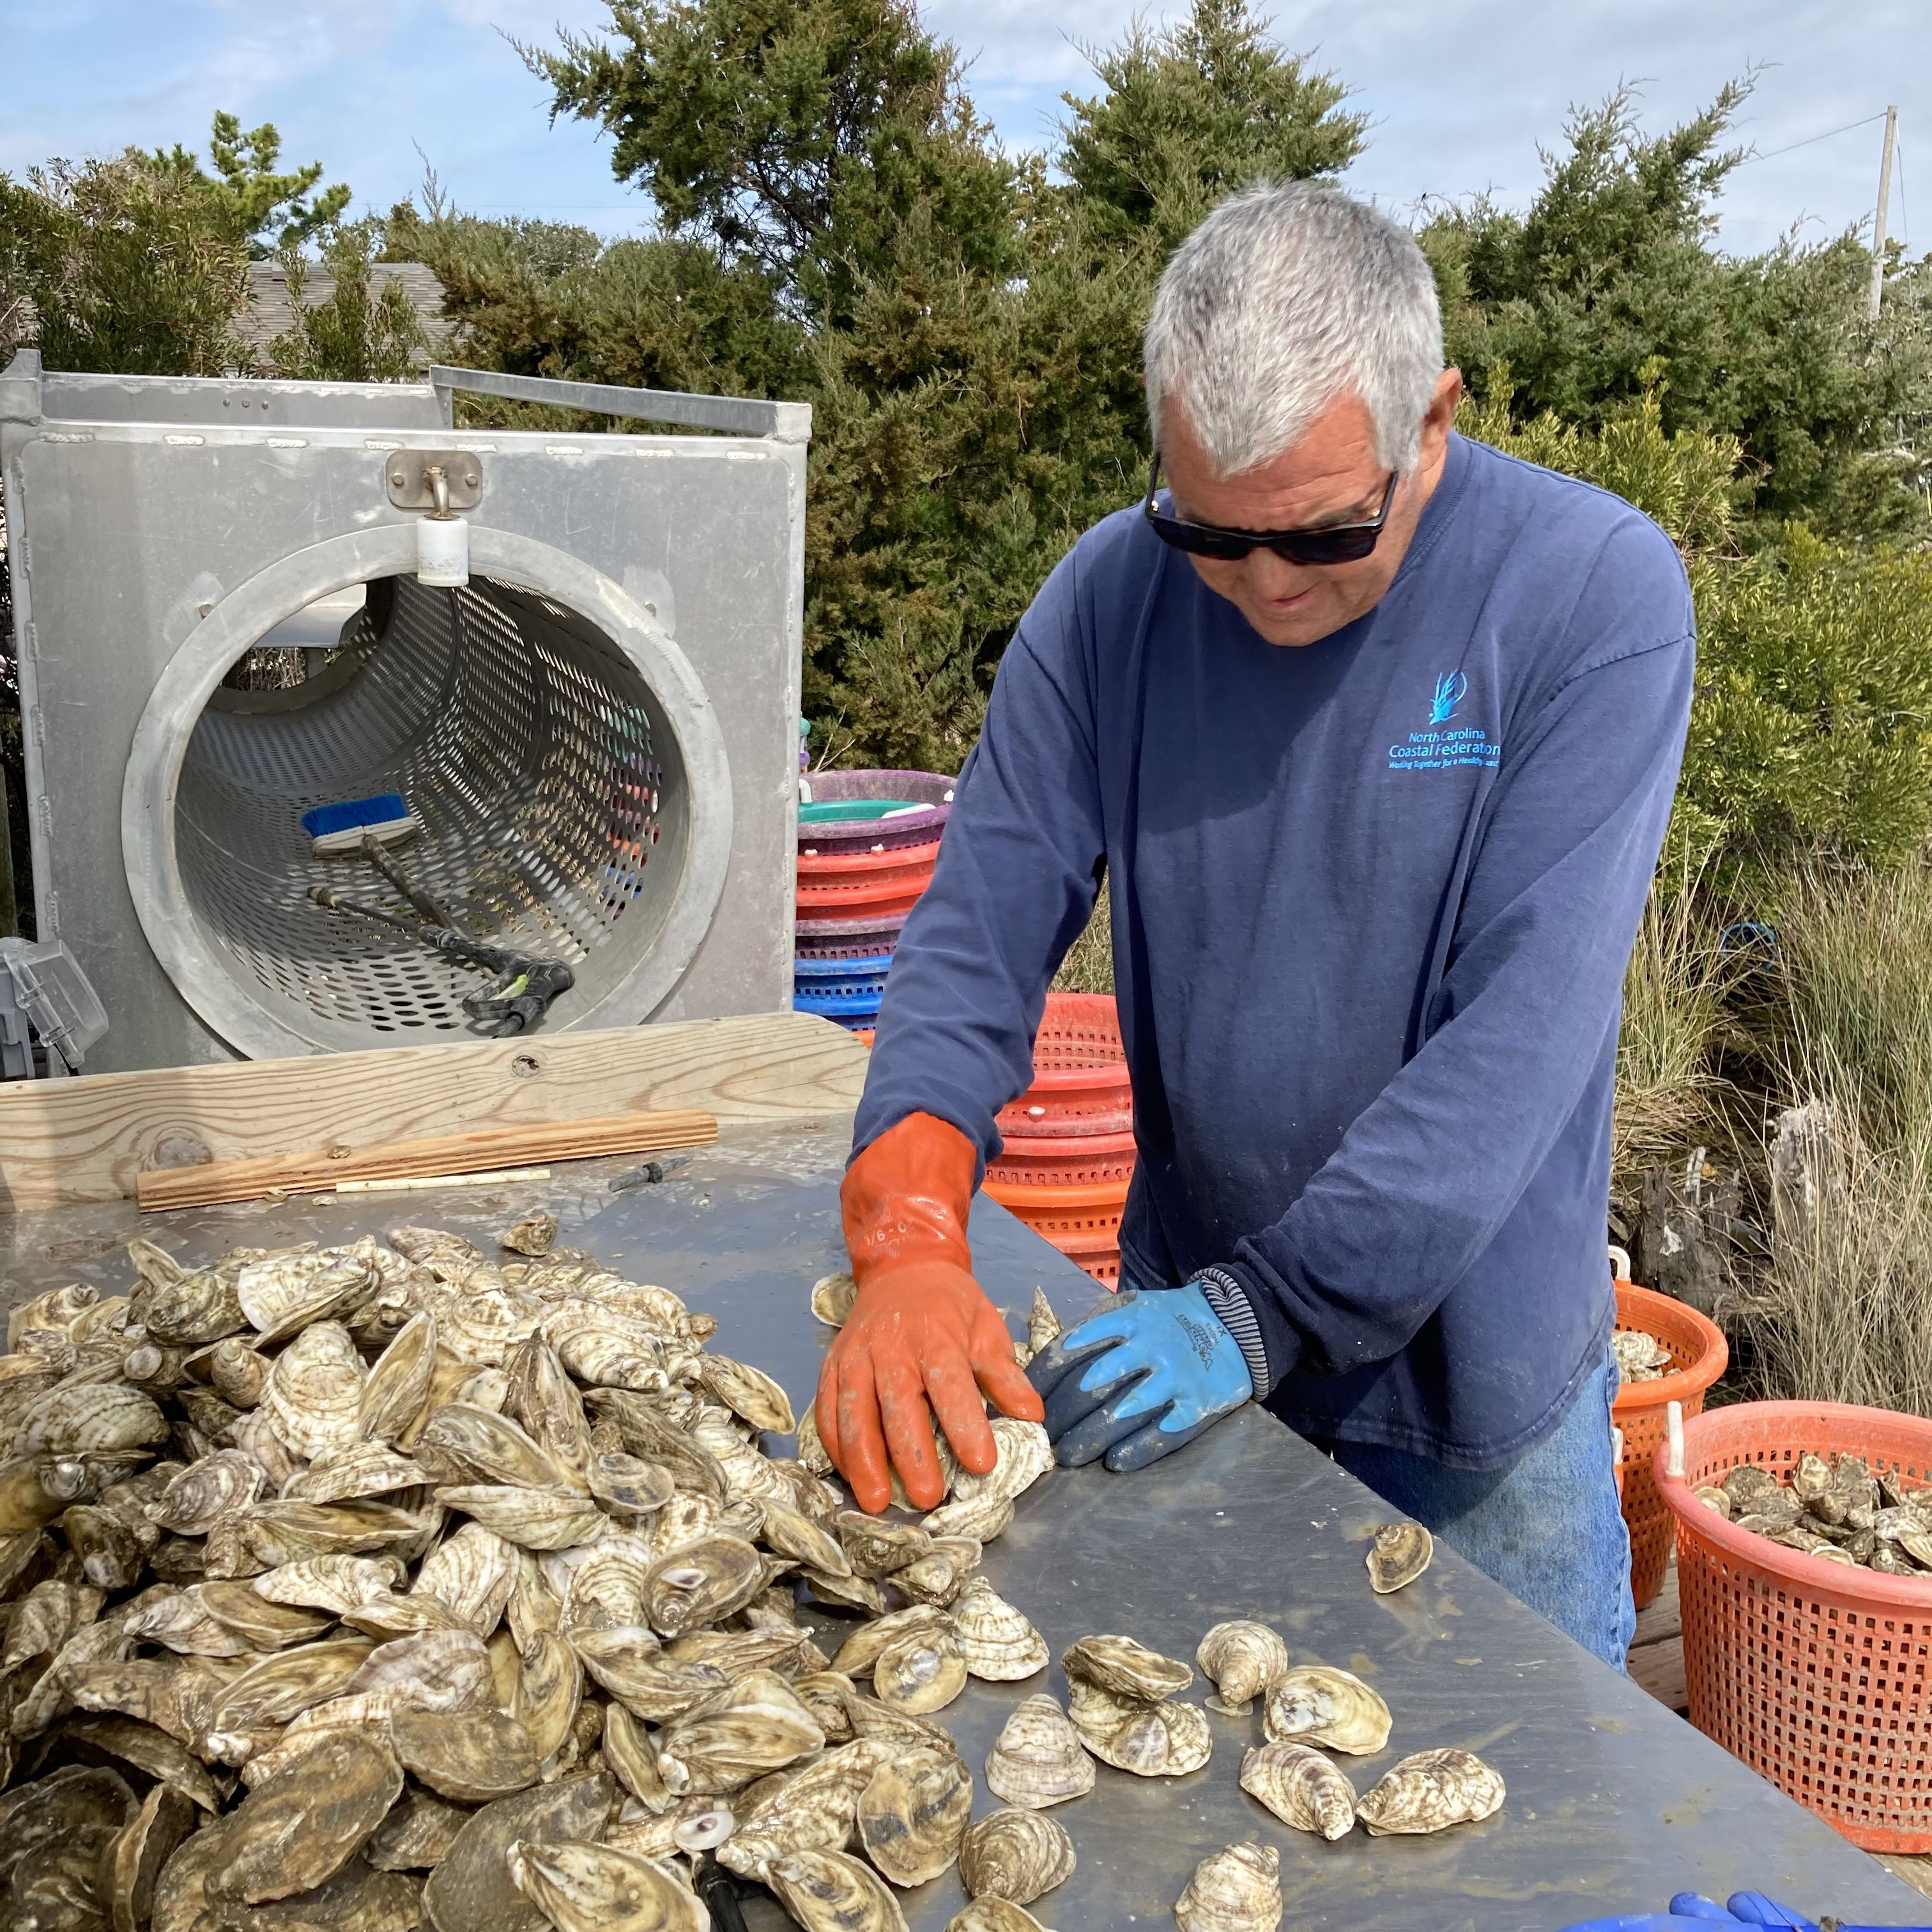 A man sorting oysters.